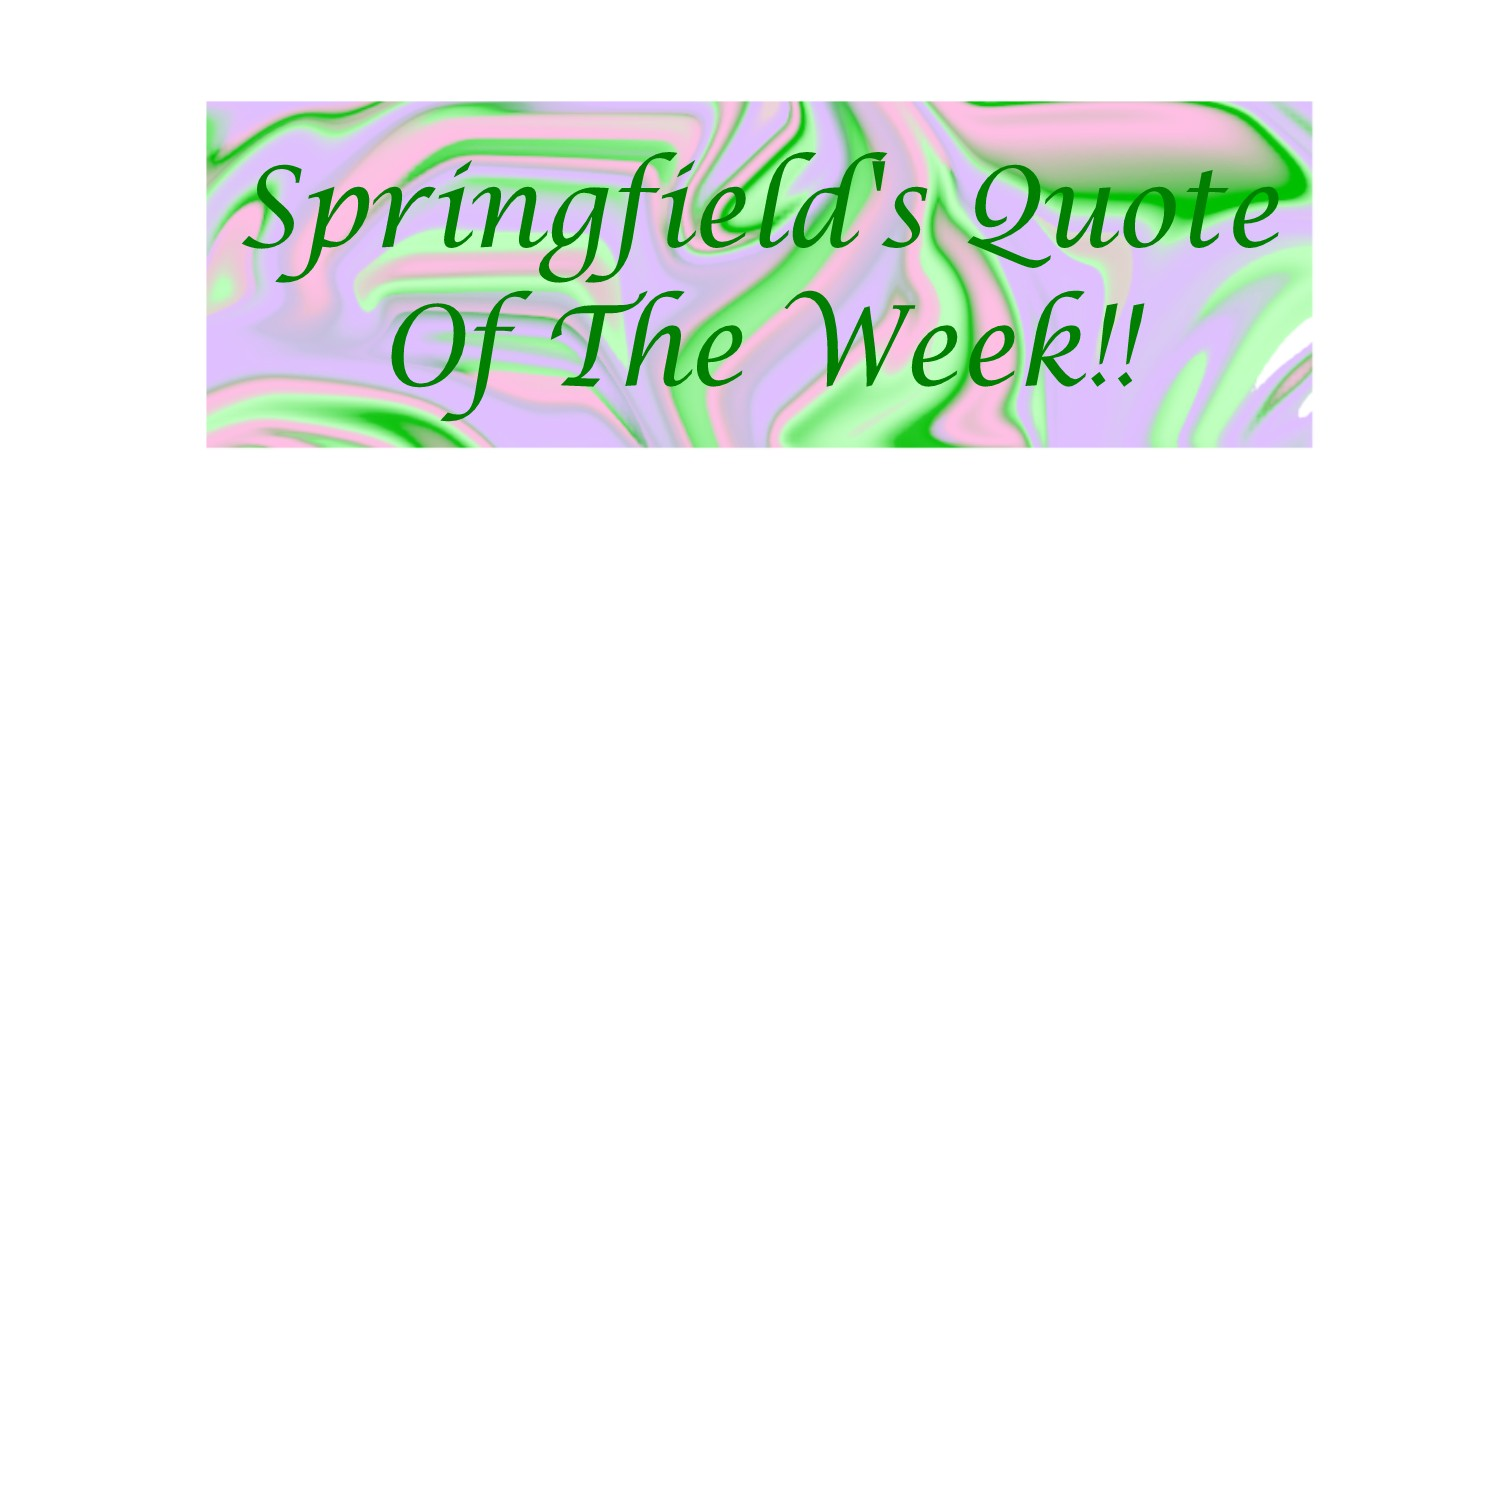 Springfield's Quote of the Week!